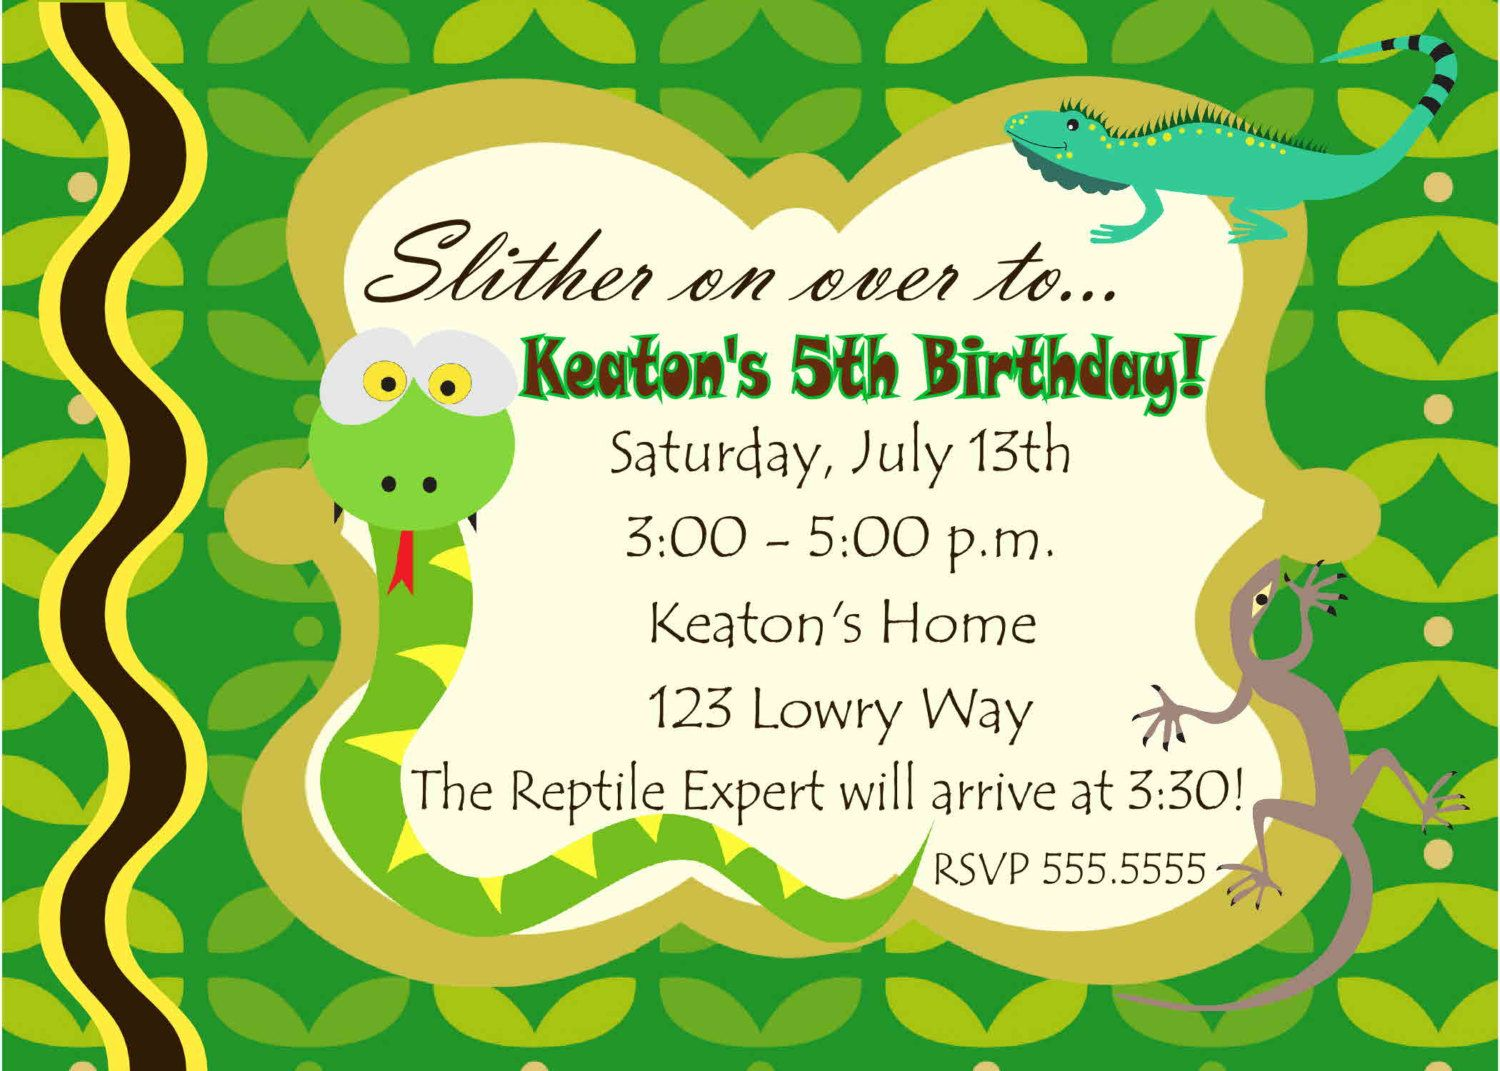 Digital Reptile Snake Photo Birthday Party Invitation You Print Printable DIY 1000 Via Etsy